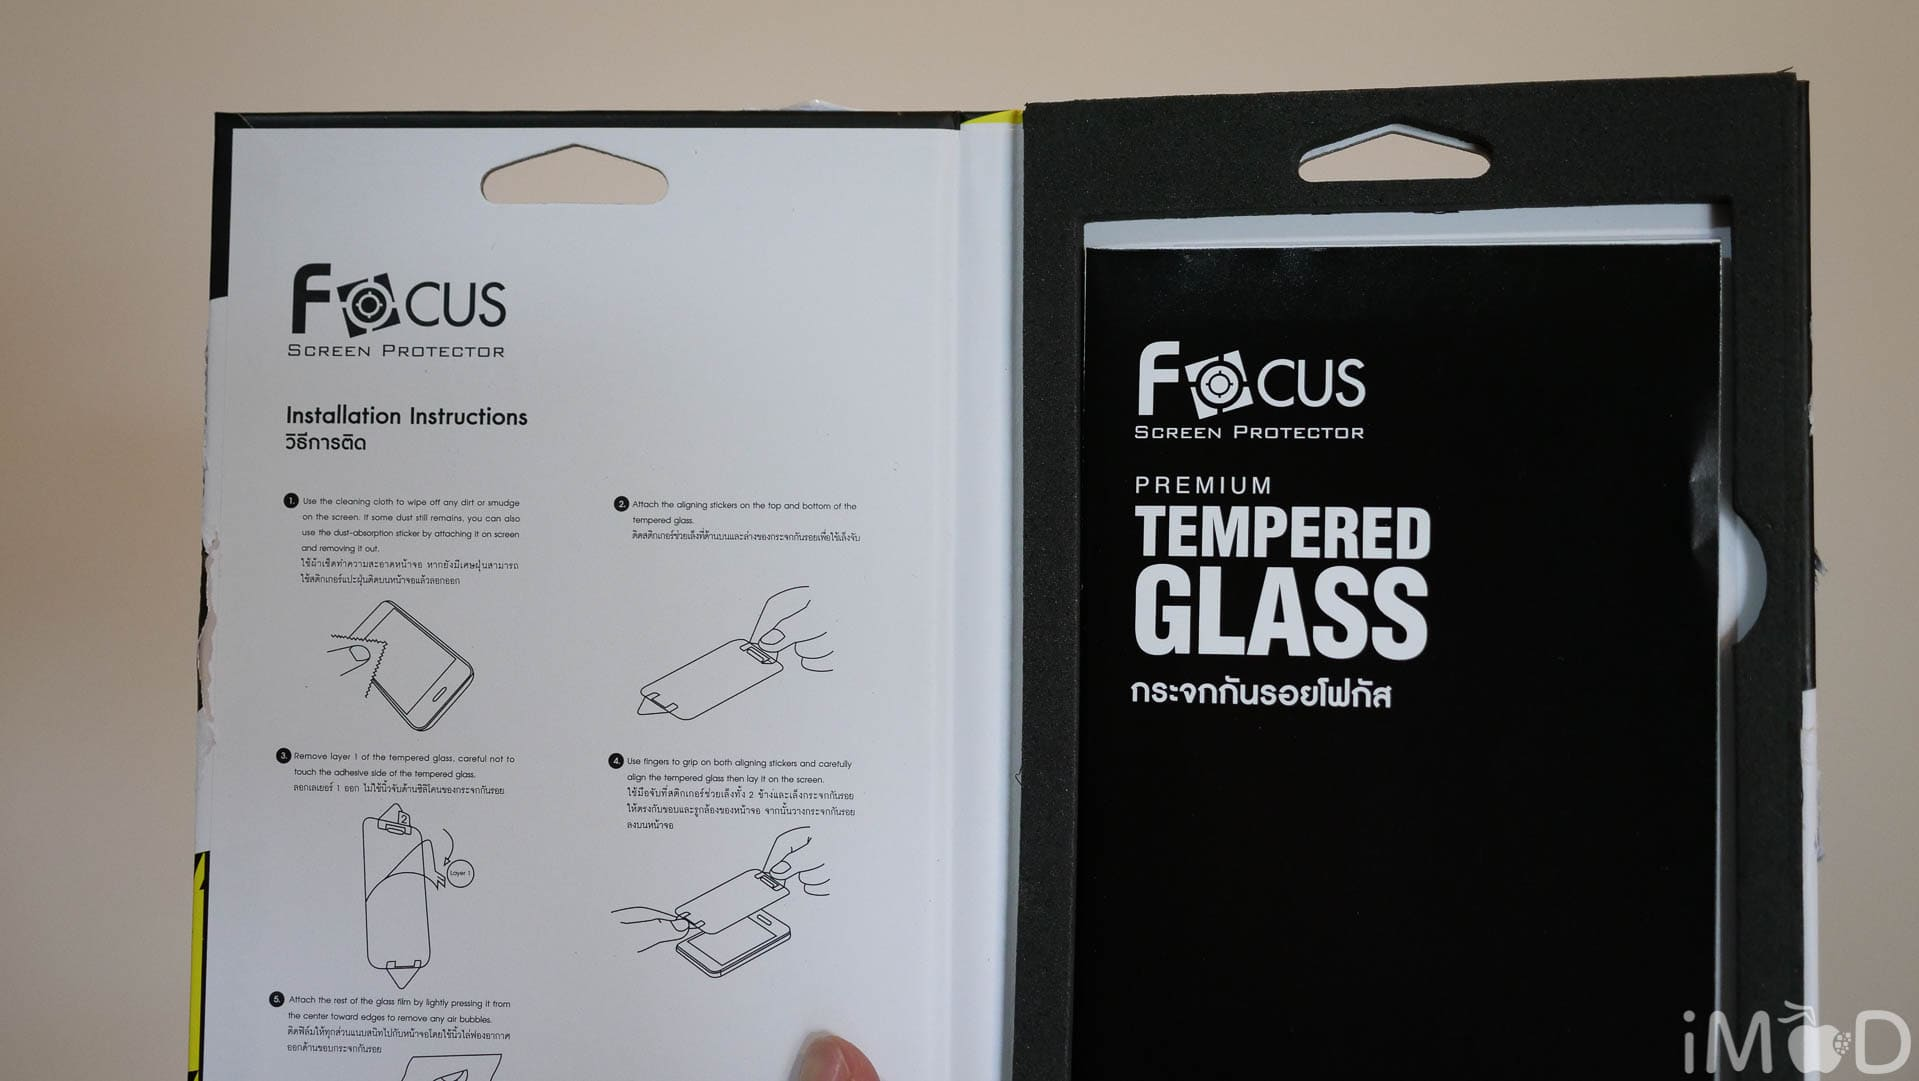 Focus Full Frame Tempered Glass Iphone X 0658 2